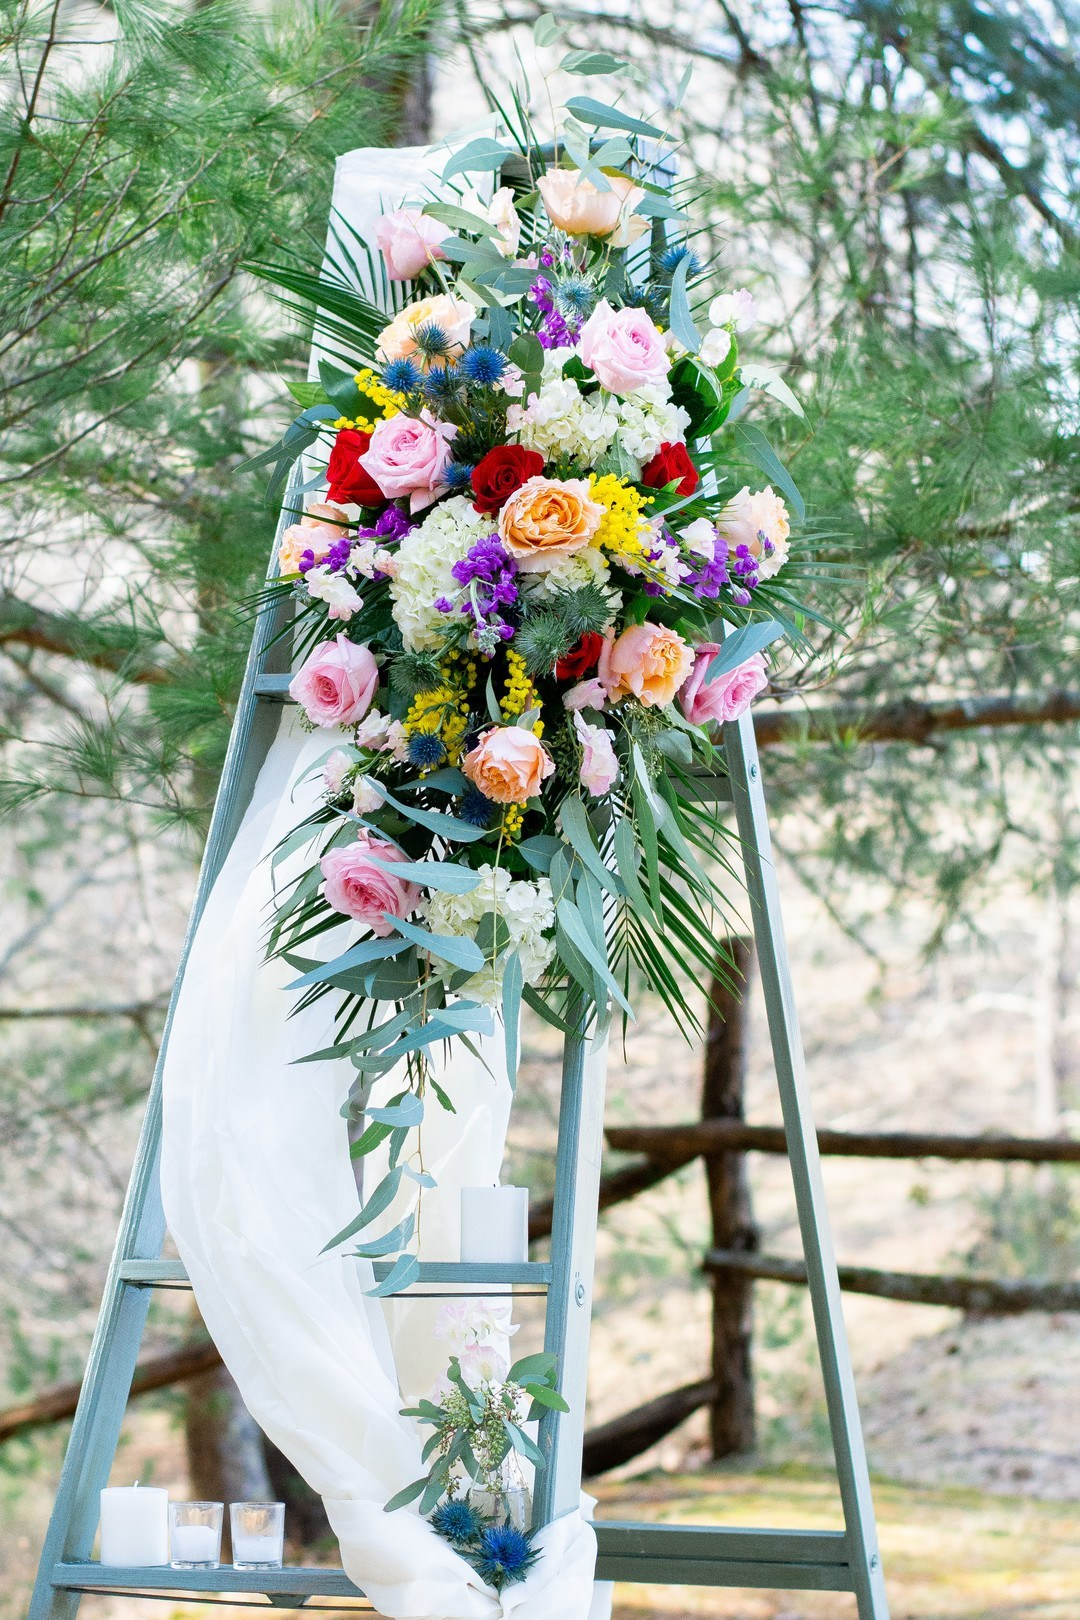 The wedding decor was done with a ladder, colorful blooms, candles and airy fabric